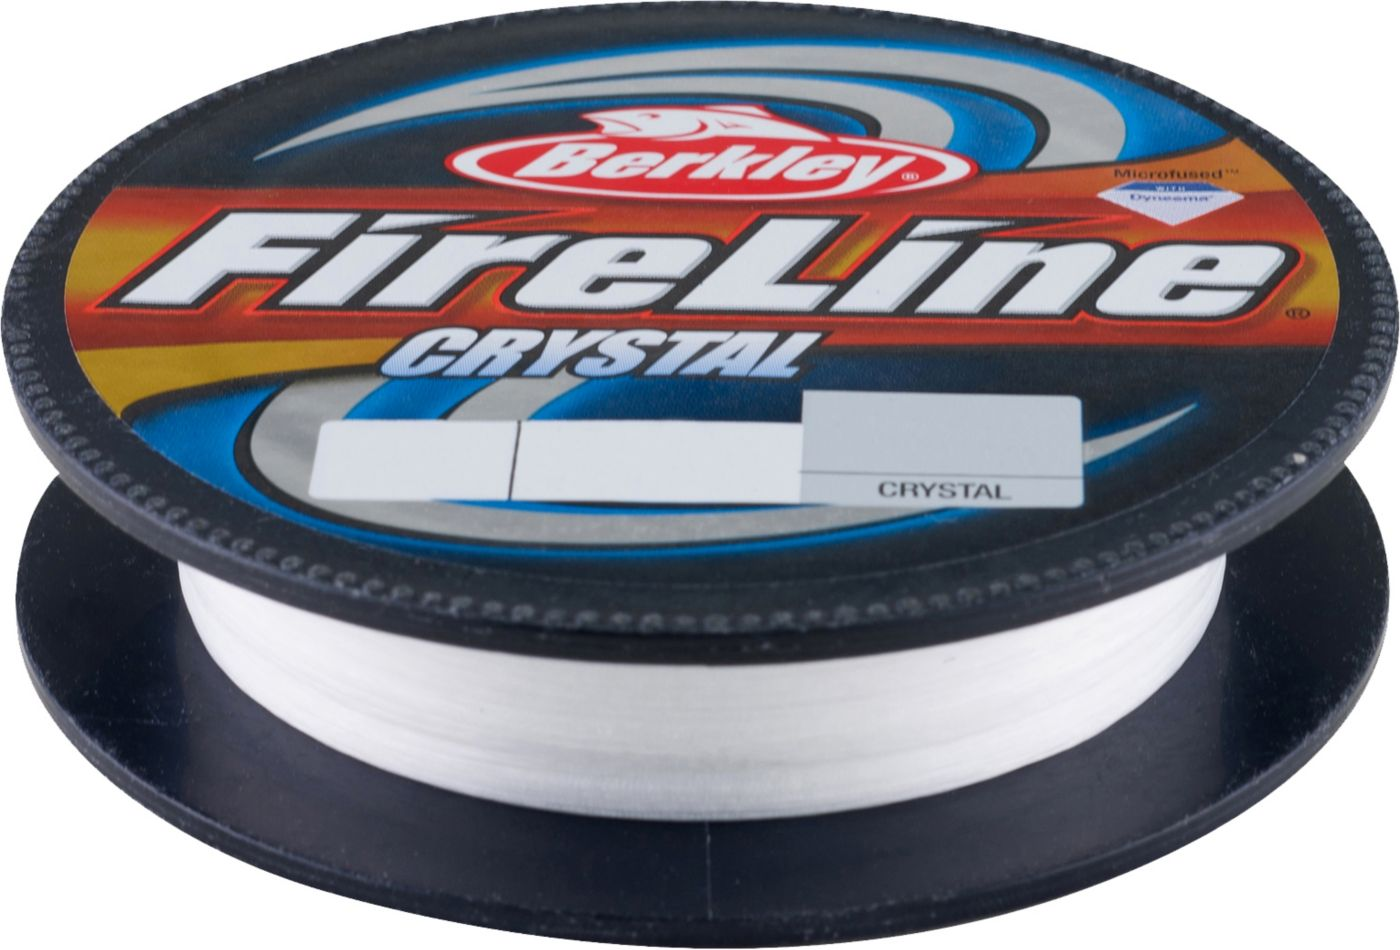 Berkley Fireline Crystal Braided Fishing Line